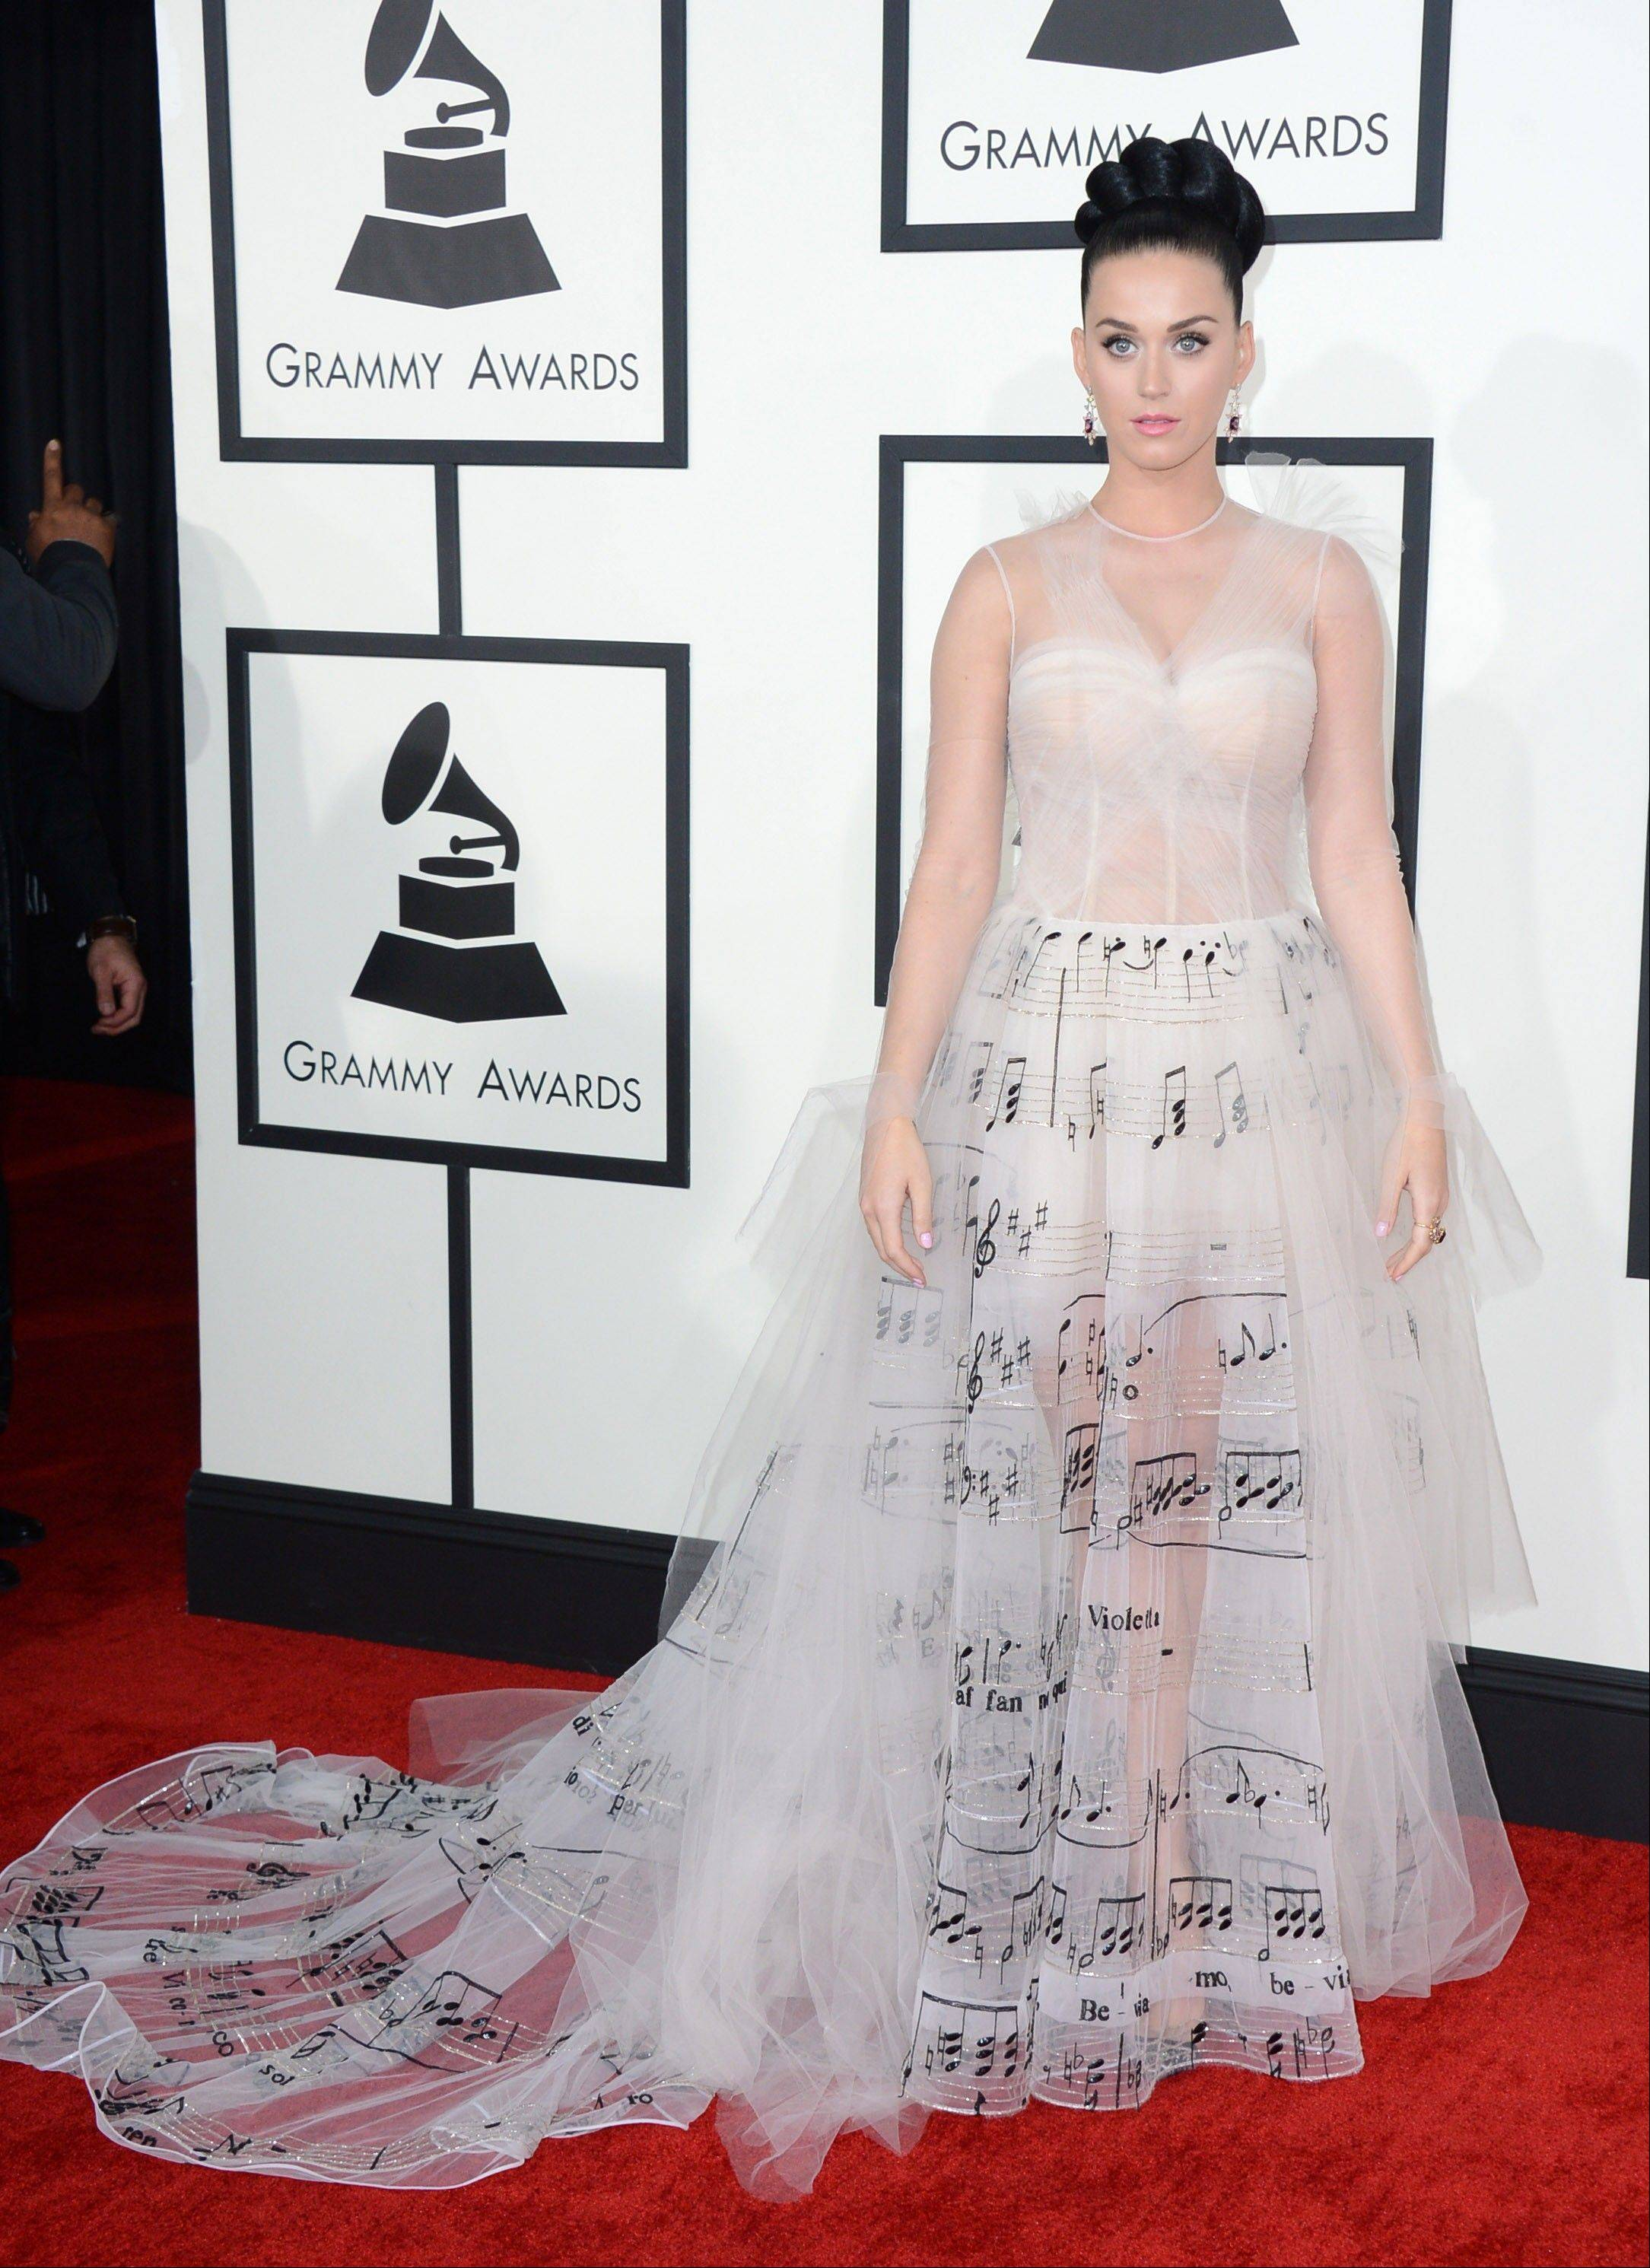 Katy Perry arrives at the 56th annual Grammy Awards at Staples Center on Sunday.